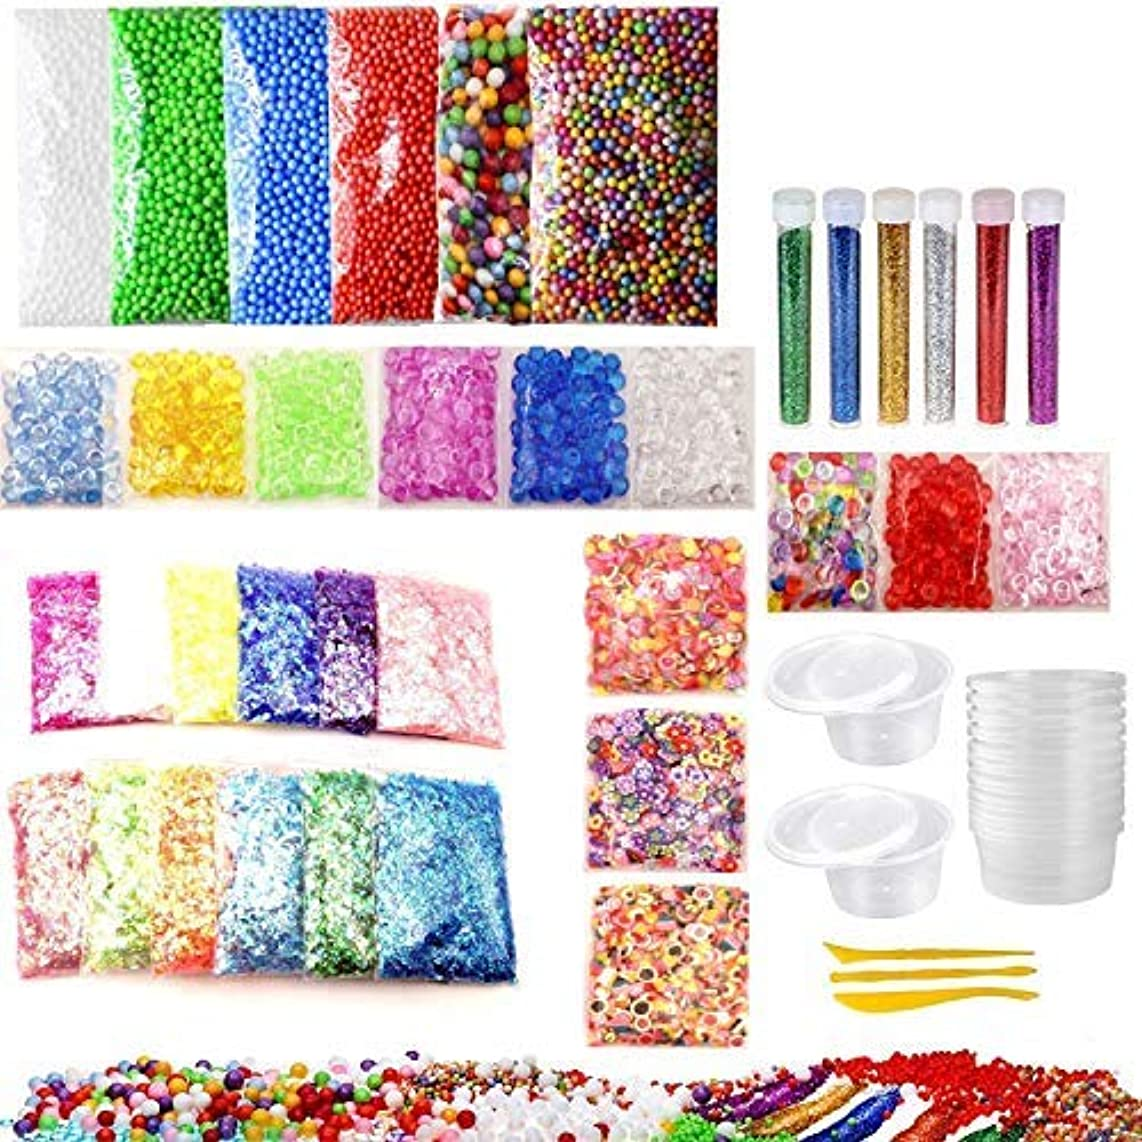 SAIBANG Cheap Slime Supplies Kit for Kids, 52 Pack Slime Beads Charms Include DIY Slimes Containers, Foam Balls, Fishbowl, Glitter Jars, Fruit Slices, Colorful Sugar Paper for Fluffy Slime Making